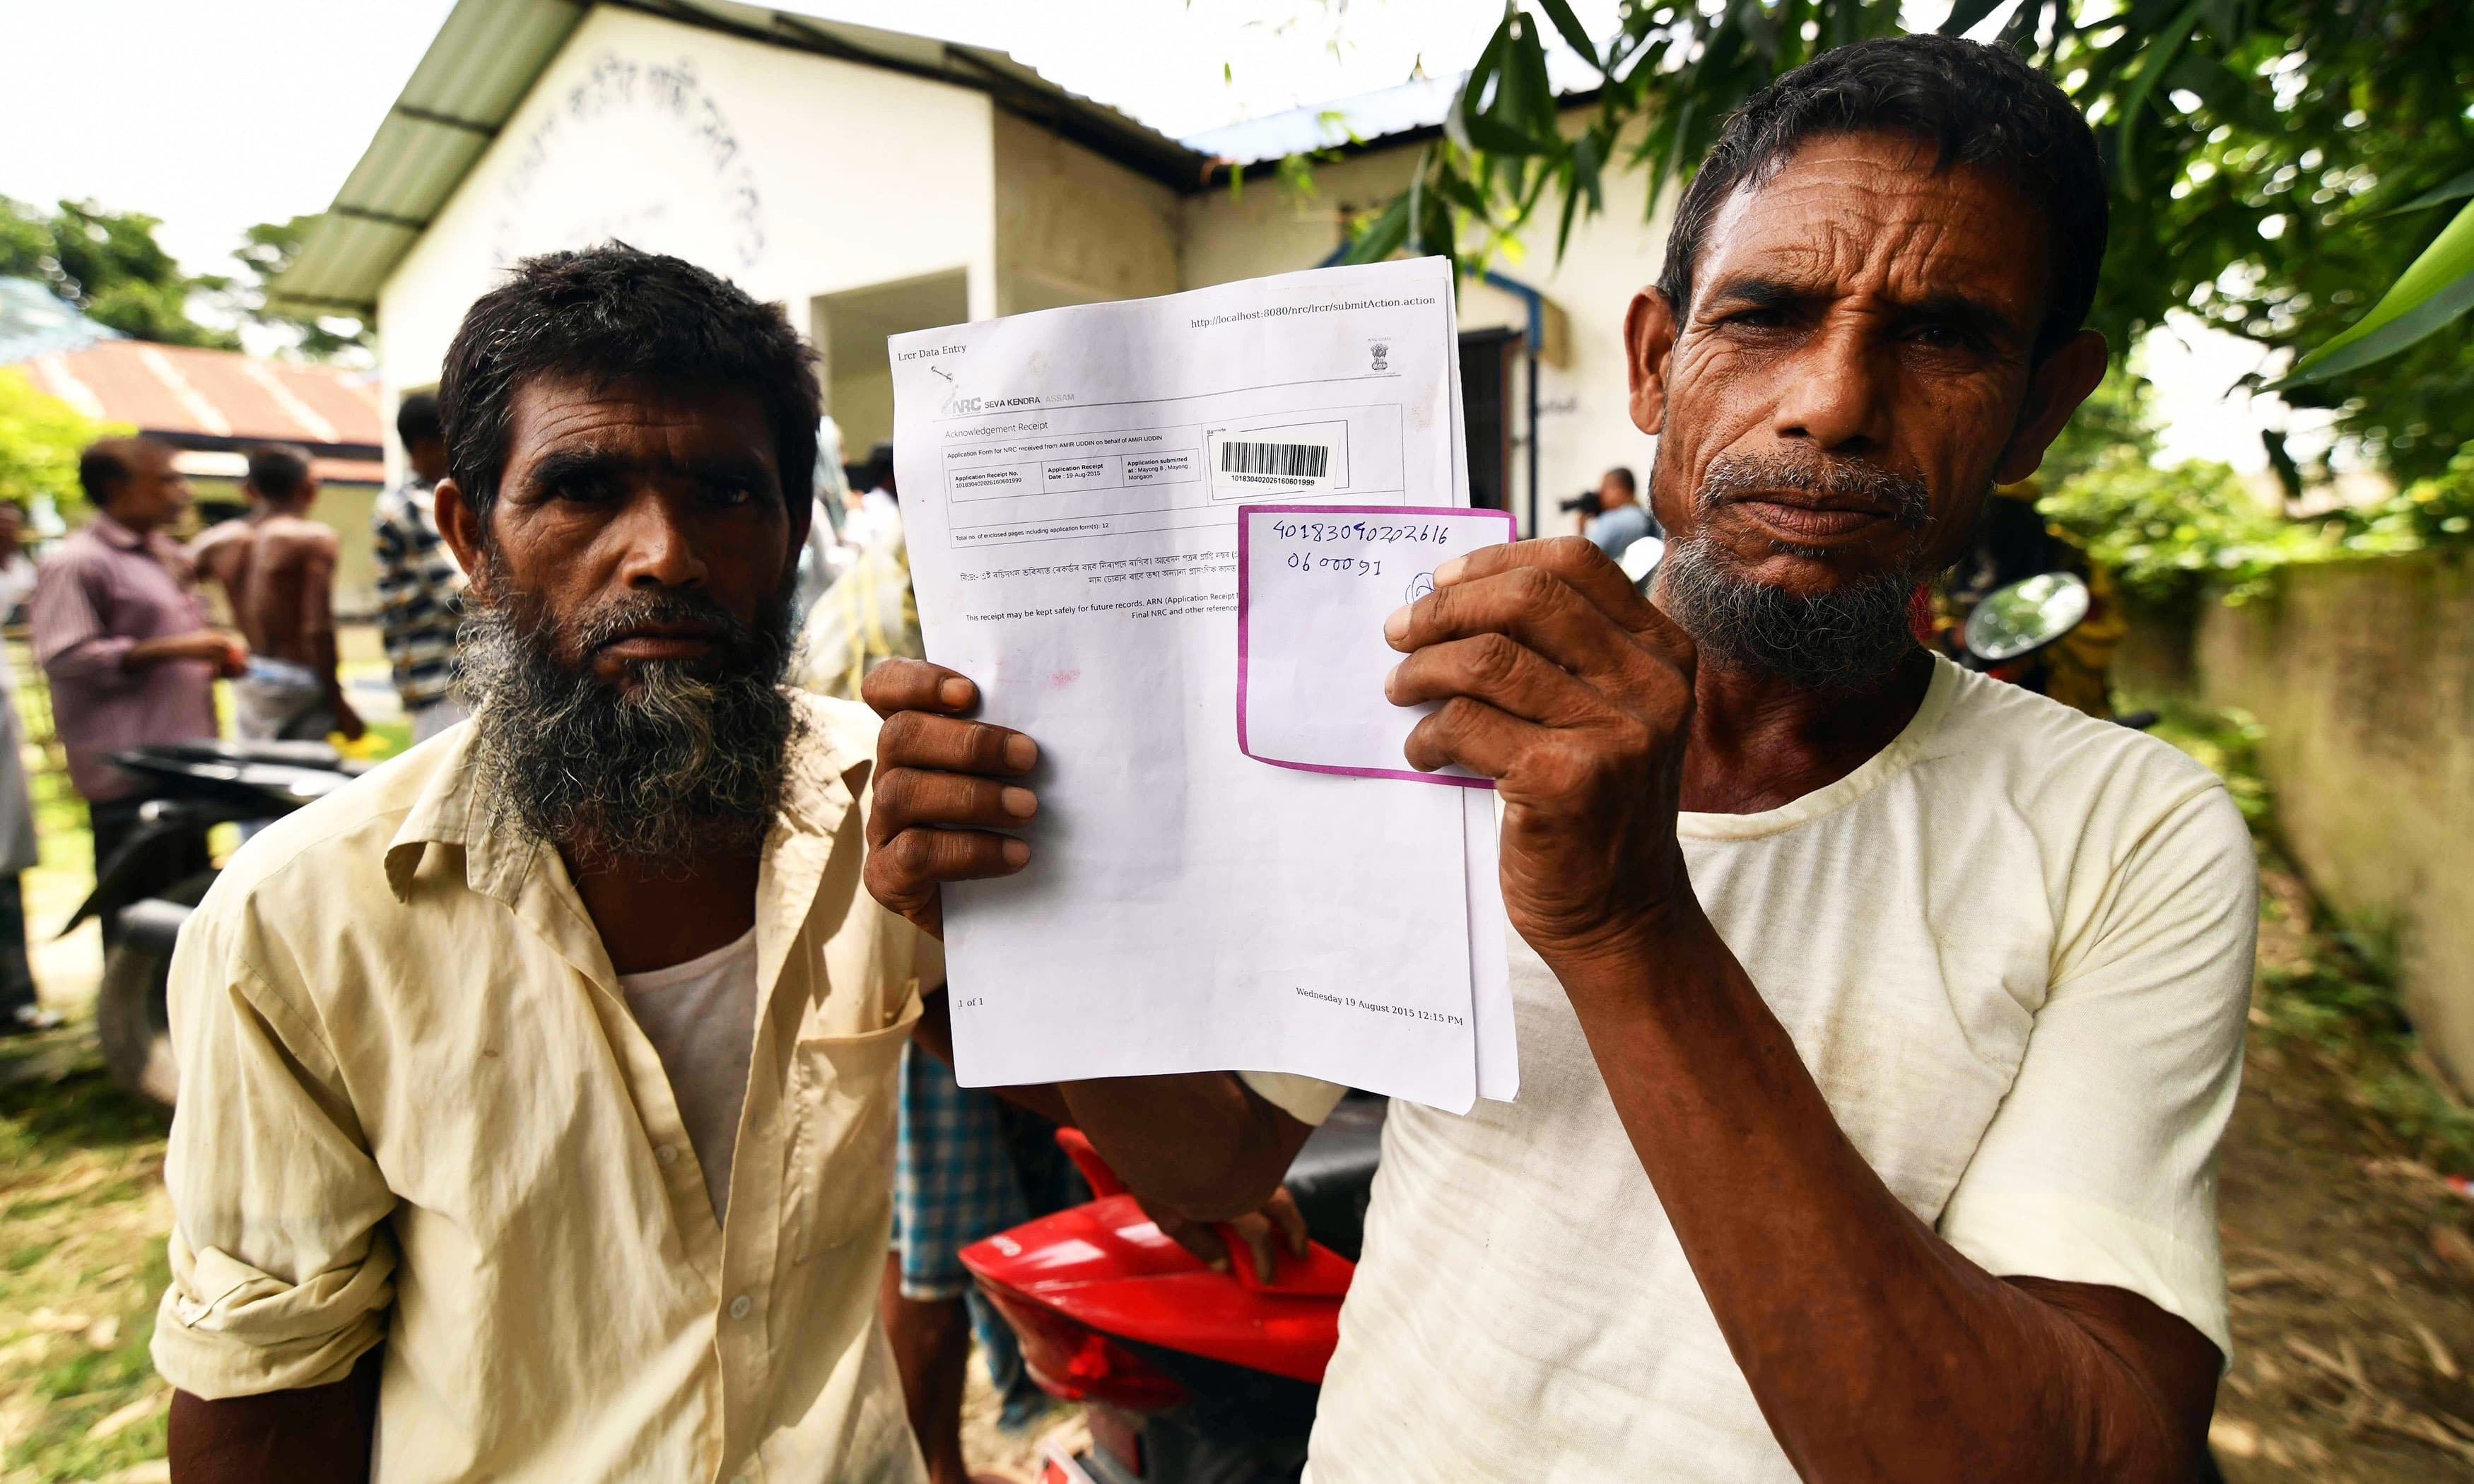 In a mammoth survey in Assam earlier this year, about 1.9 million of the state's more than 32 million people were excluded from a registry as undocumented immigrants. — AFP/File